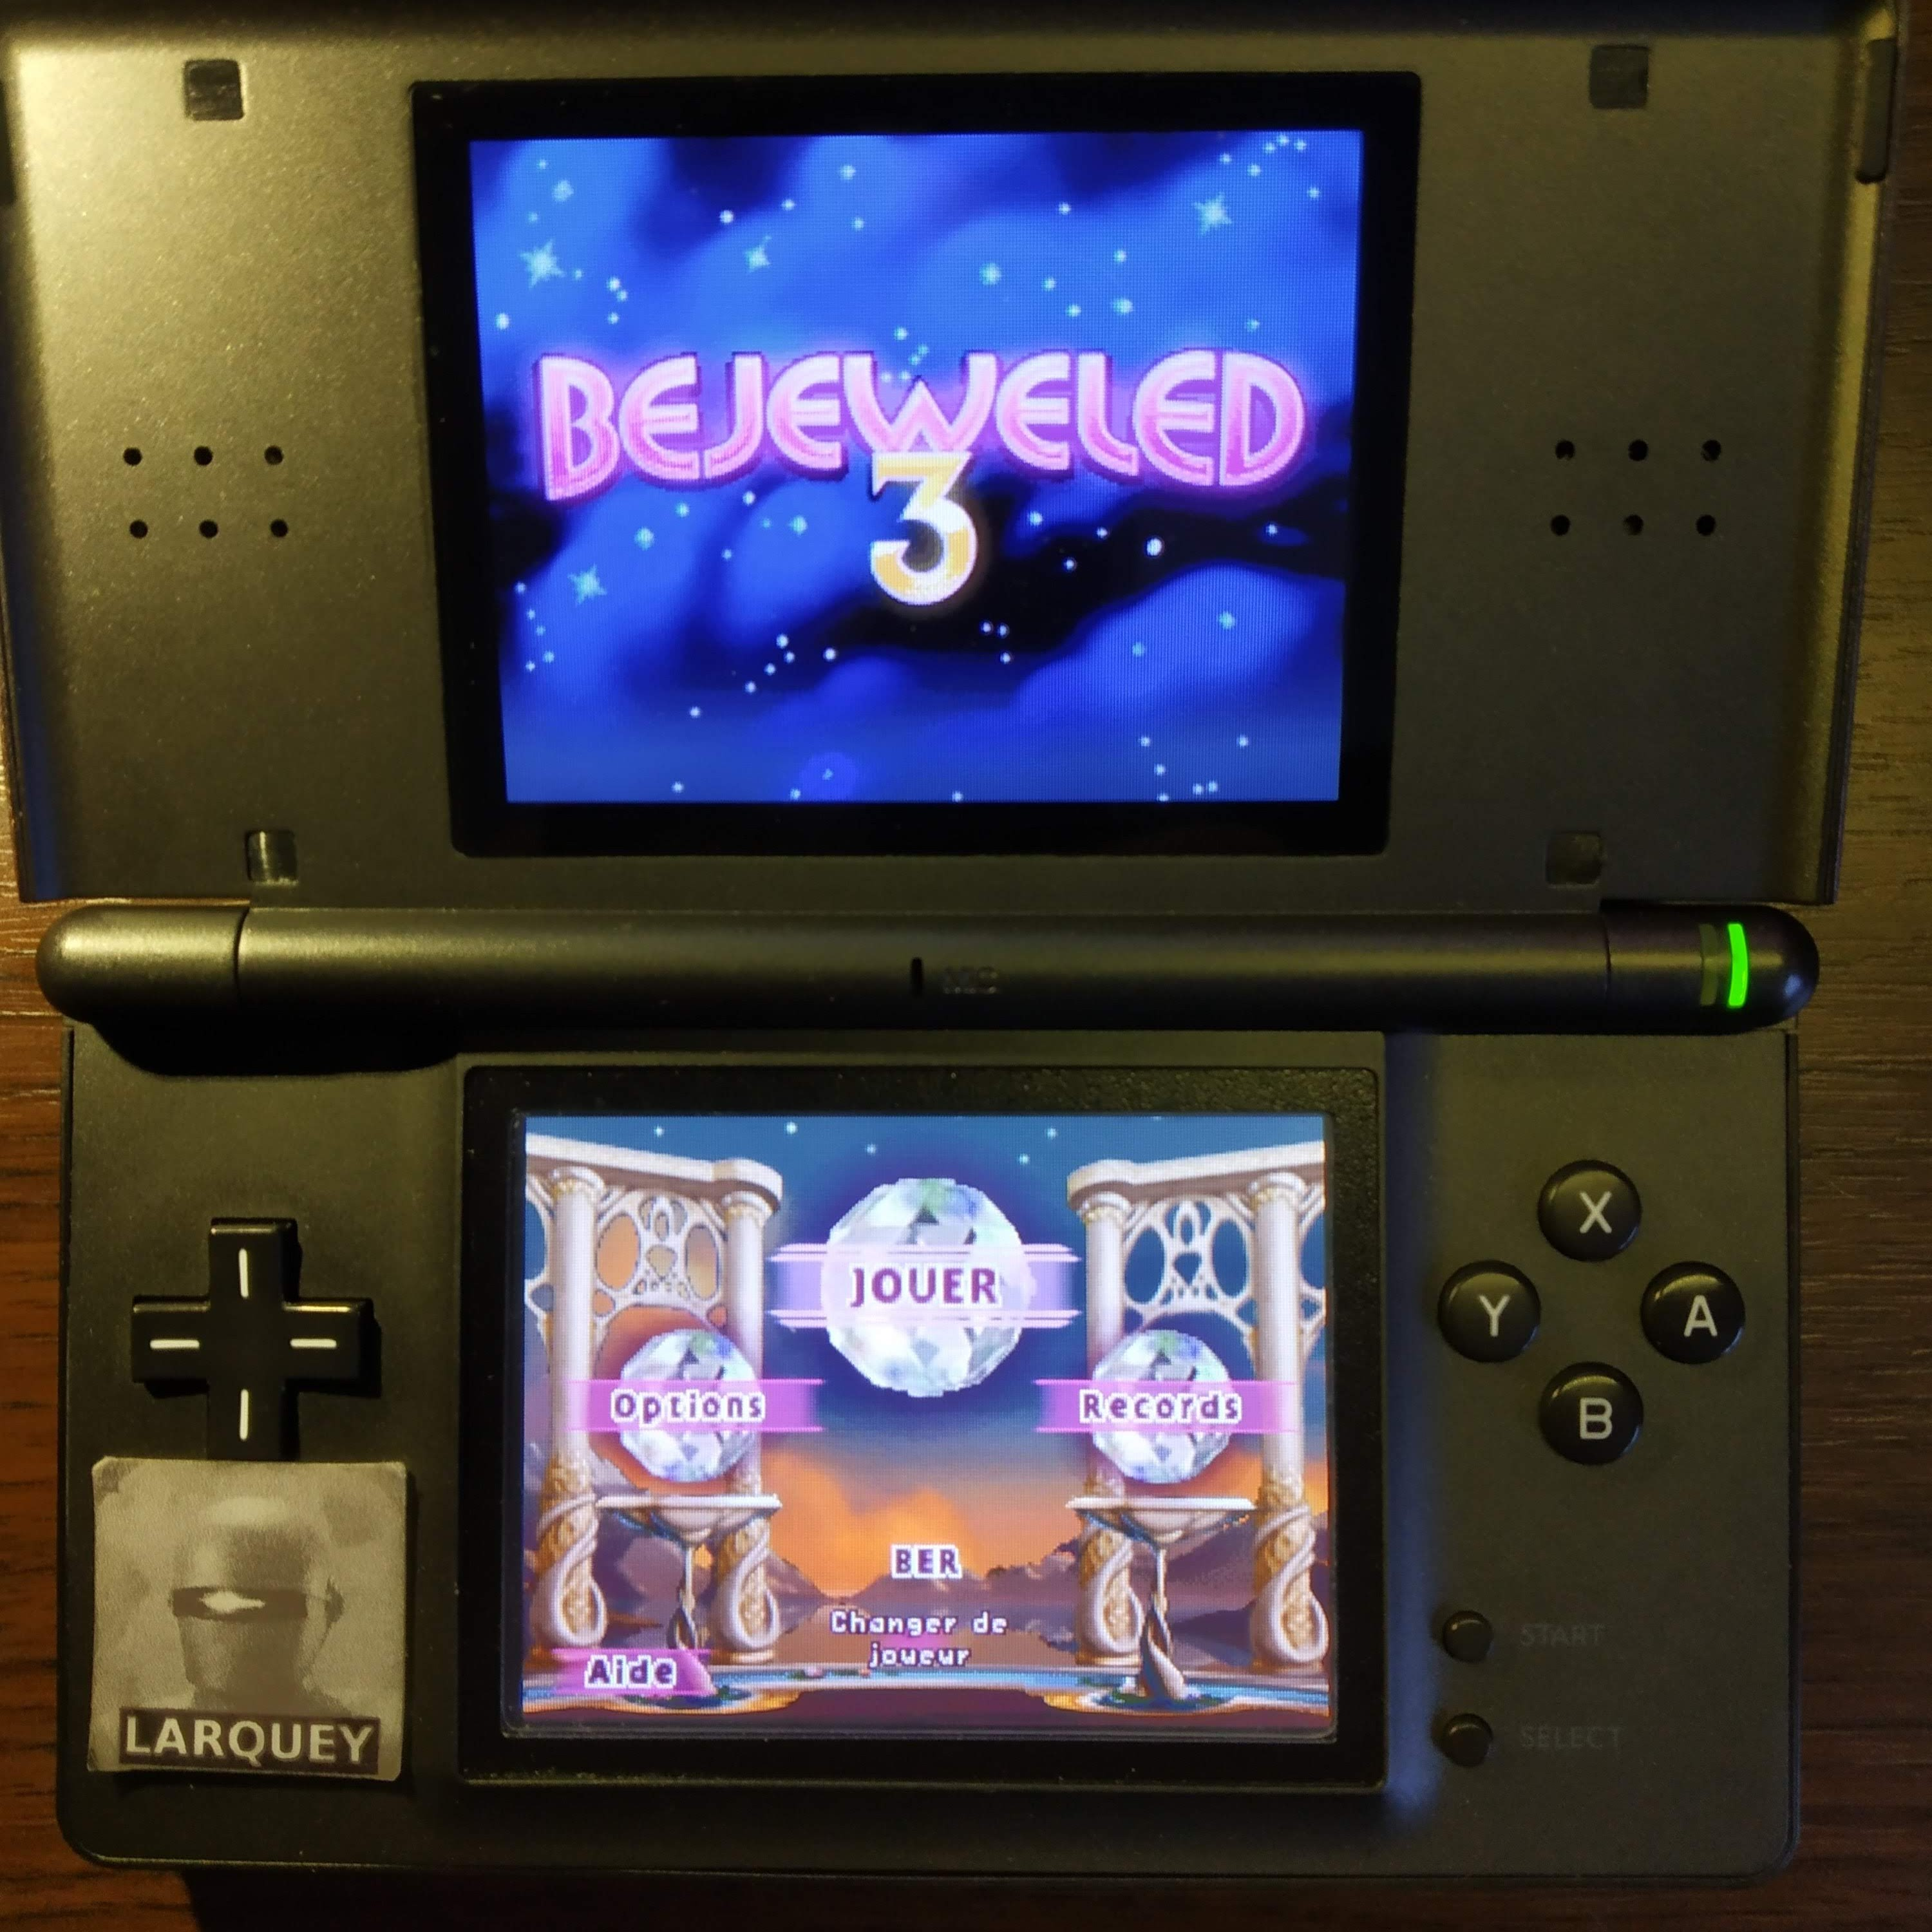 Larquey: Bejeweled 3: Classic [Level Achieved] (Nintendo DS) 4 points on 2020-09-24 12:20:47